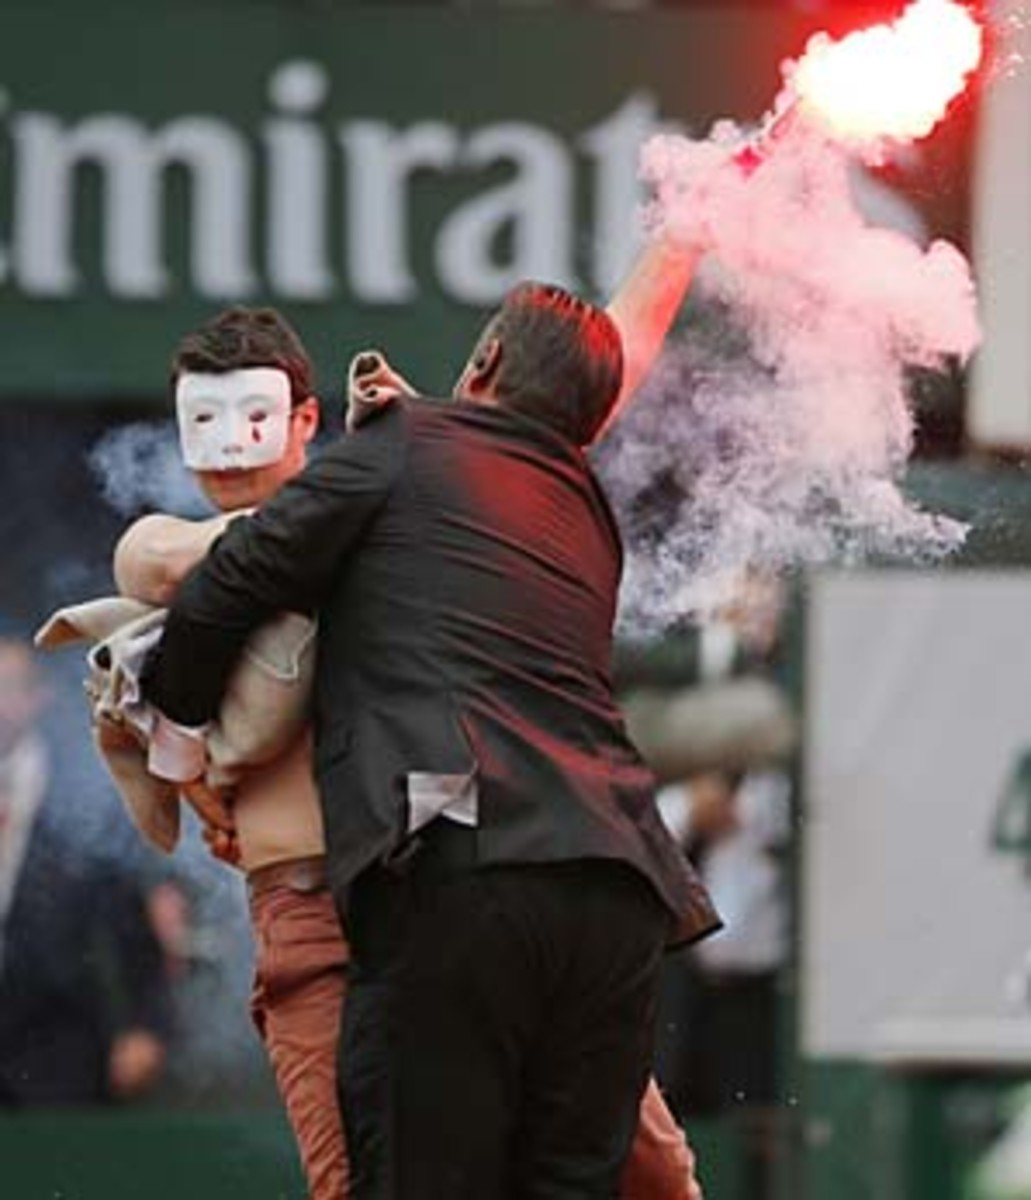 A security guard grabs a demonstrator who ran on court. (Michel Spingler/AP)